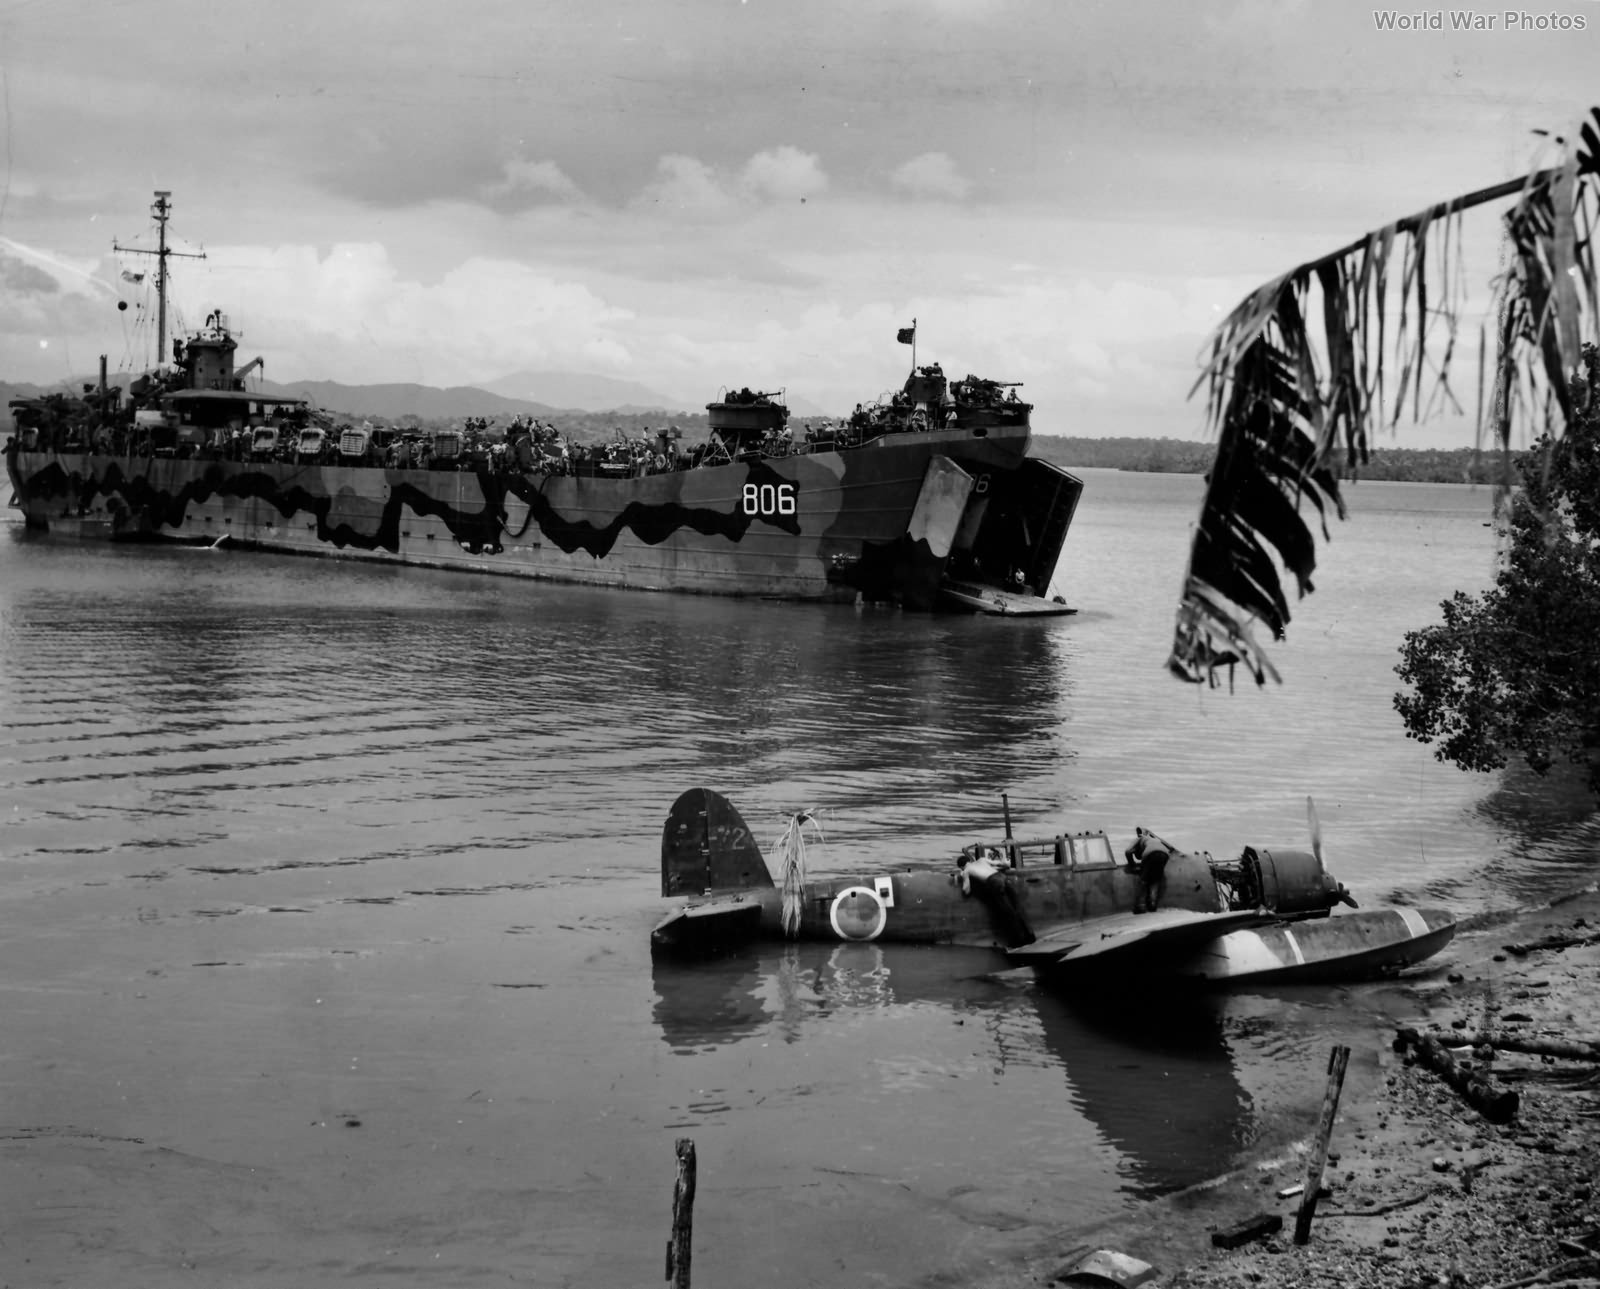 E13A and USS LST-806 Palawan, Philippines 1945